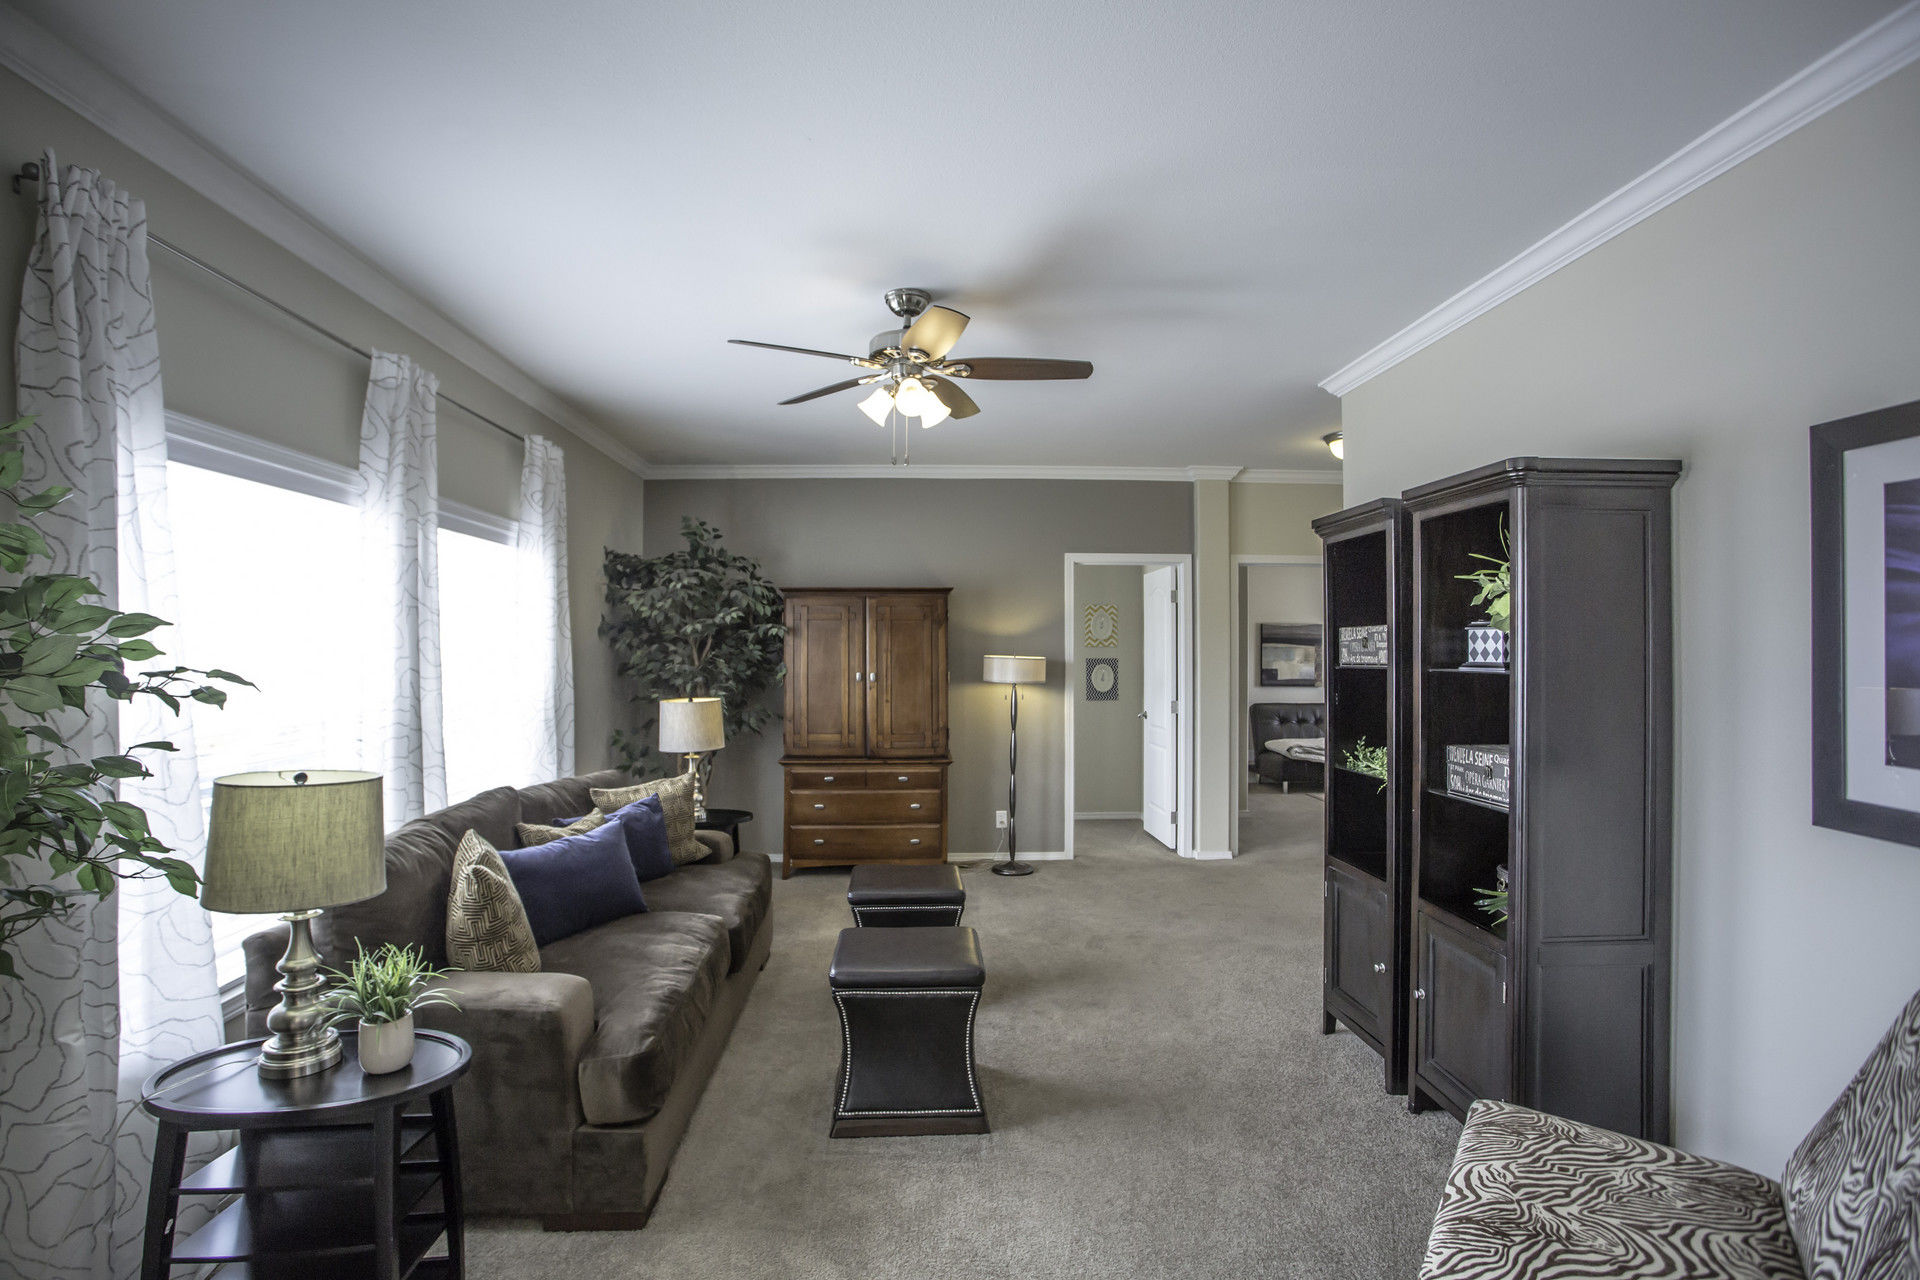 Modular Homes Washington State >> Karsten Big Tex 4+ bed / 2 bath / 2052 sqft affordable home for $99900 | Model K2776A from Homes ...